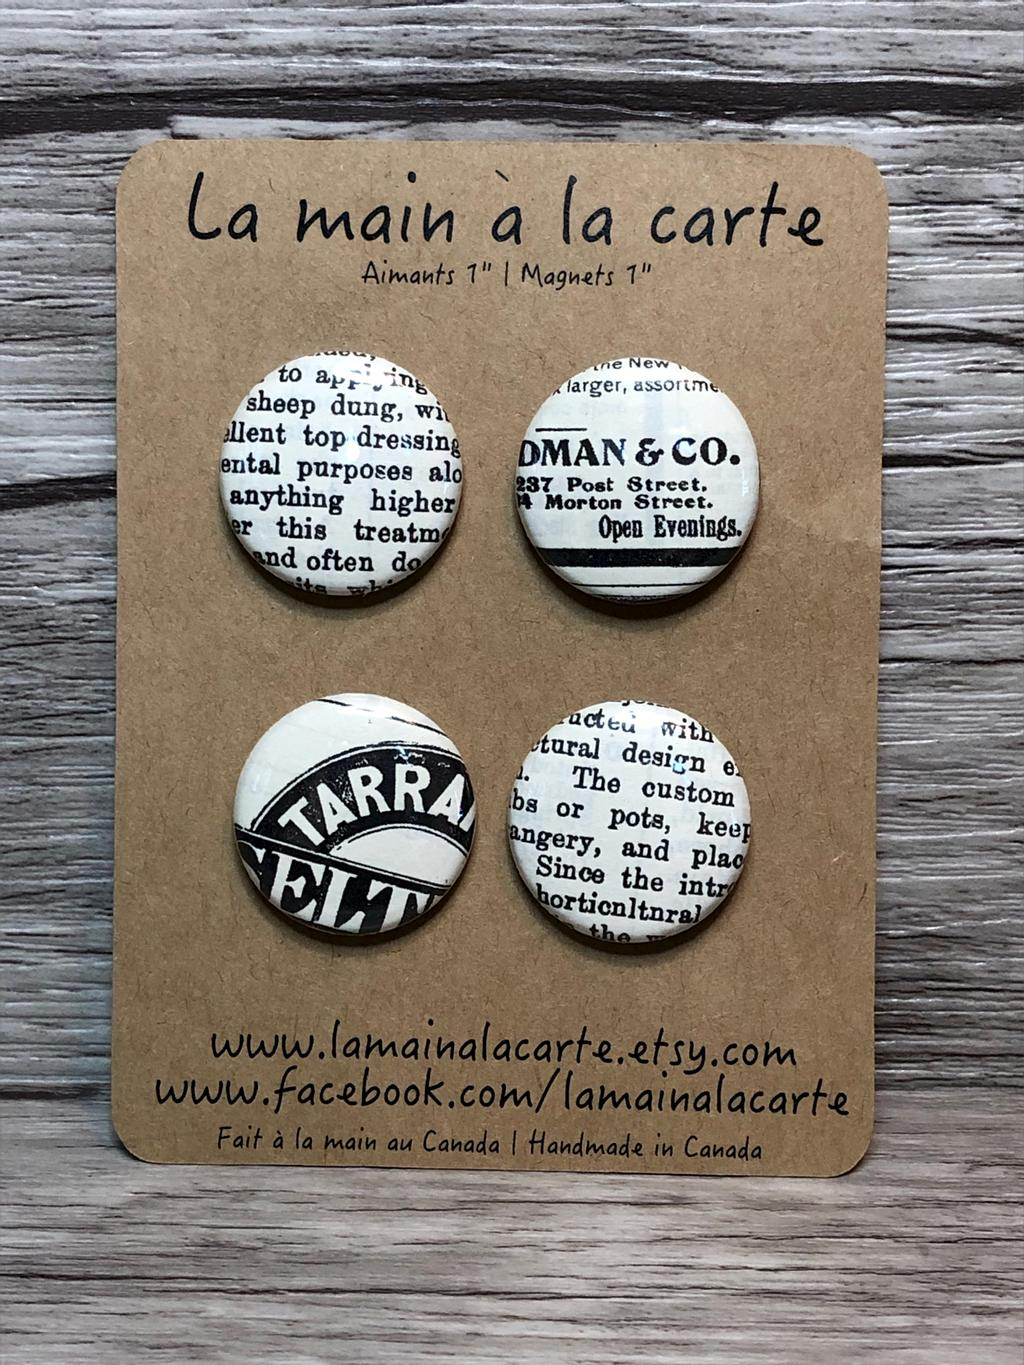 Aimants Journal, ensemble de 2 ou de 4, 5$ et 8$ par La main à la carte sur Etsy